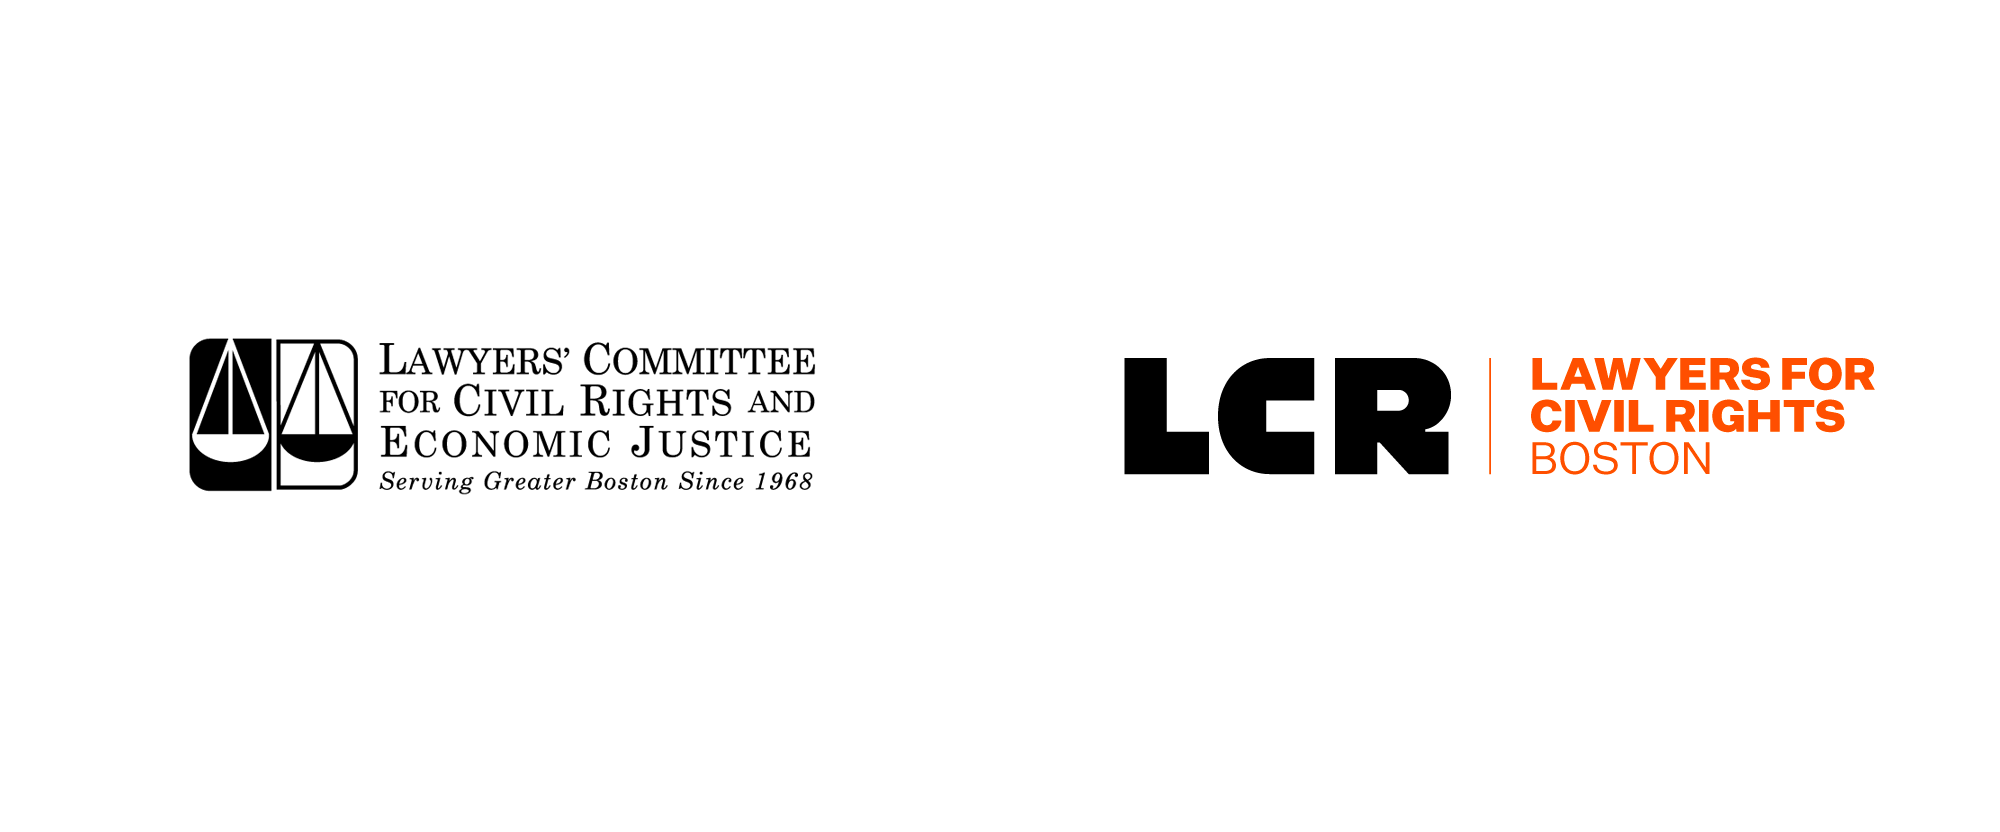 New Logo and Identity for Lawyers for Civil Rights by OverUnder